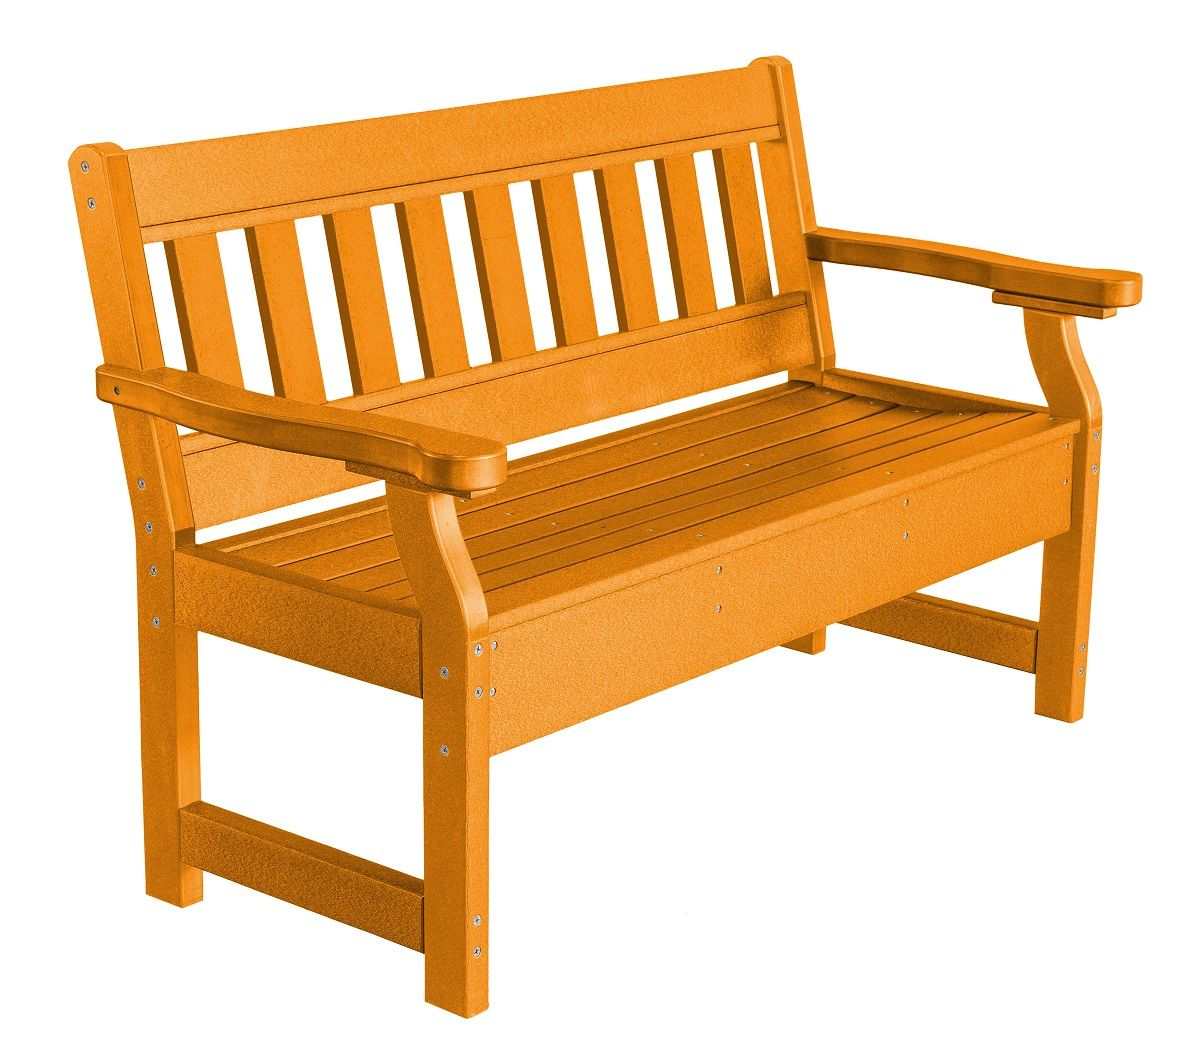 Bright Orange Aden Garden Bench